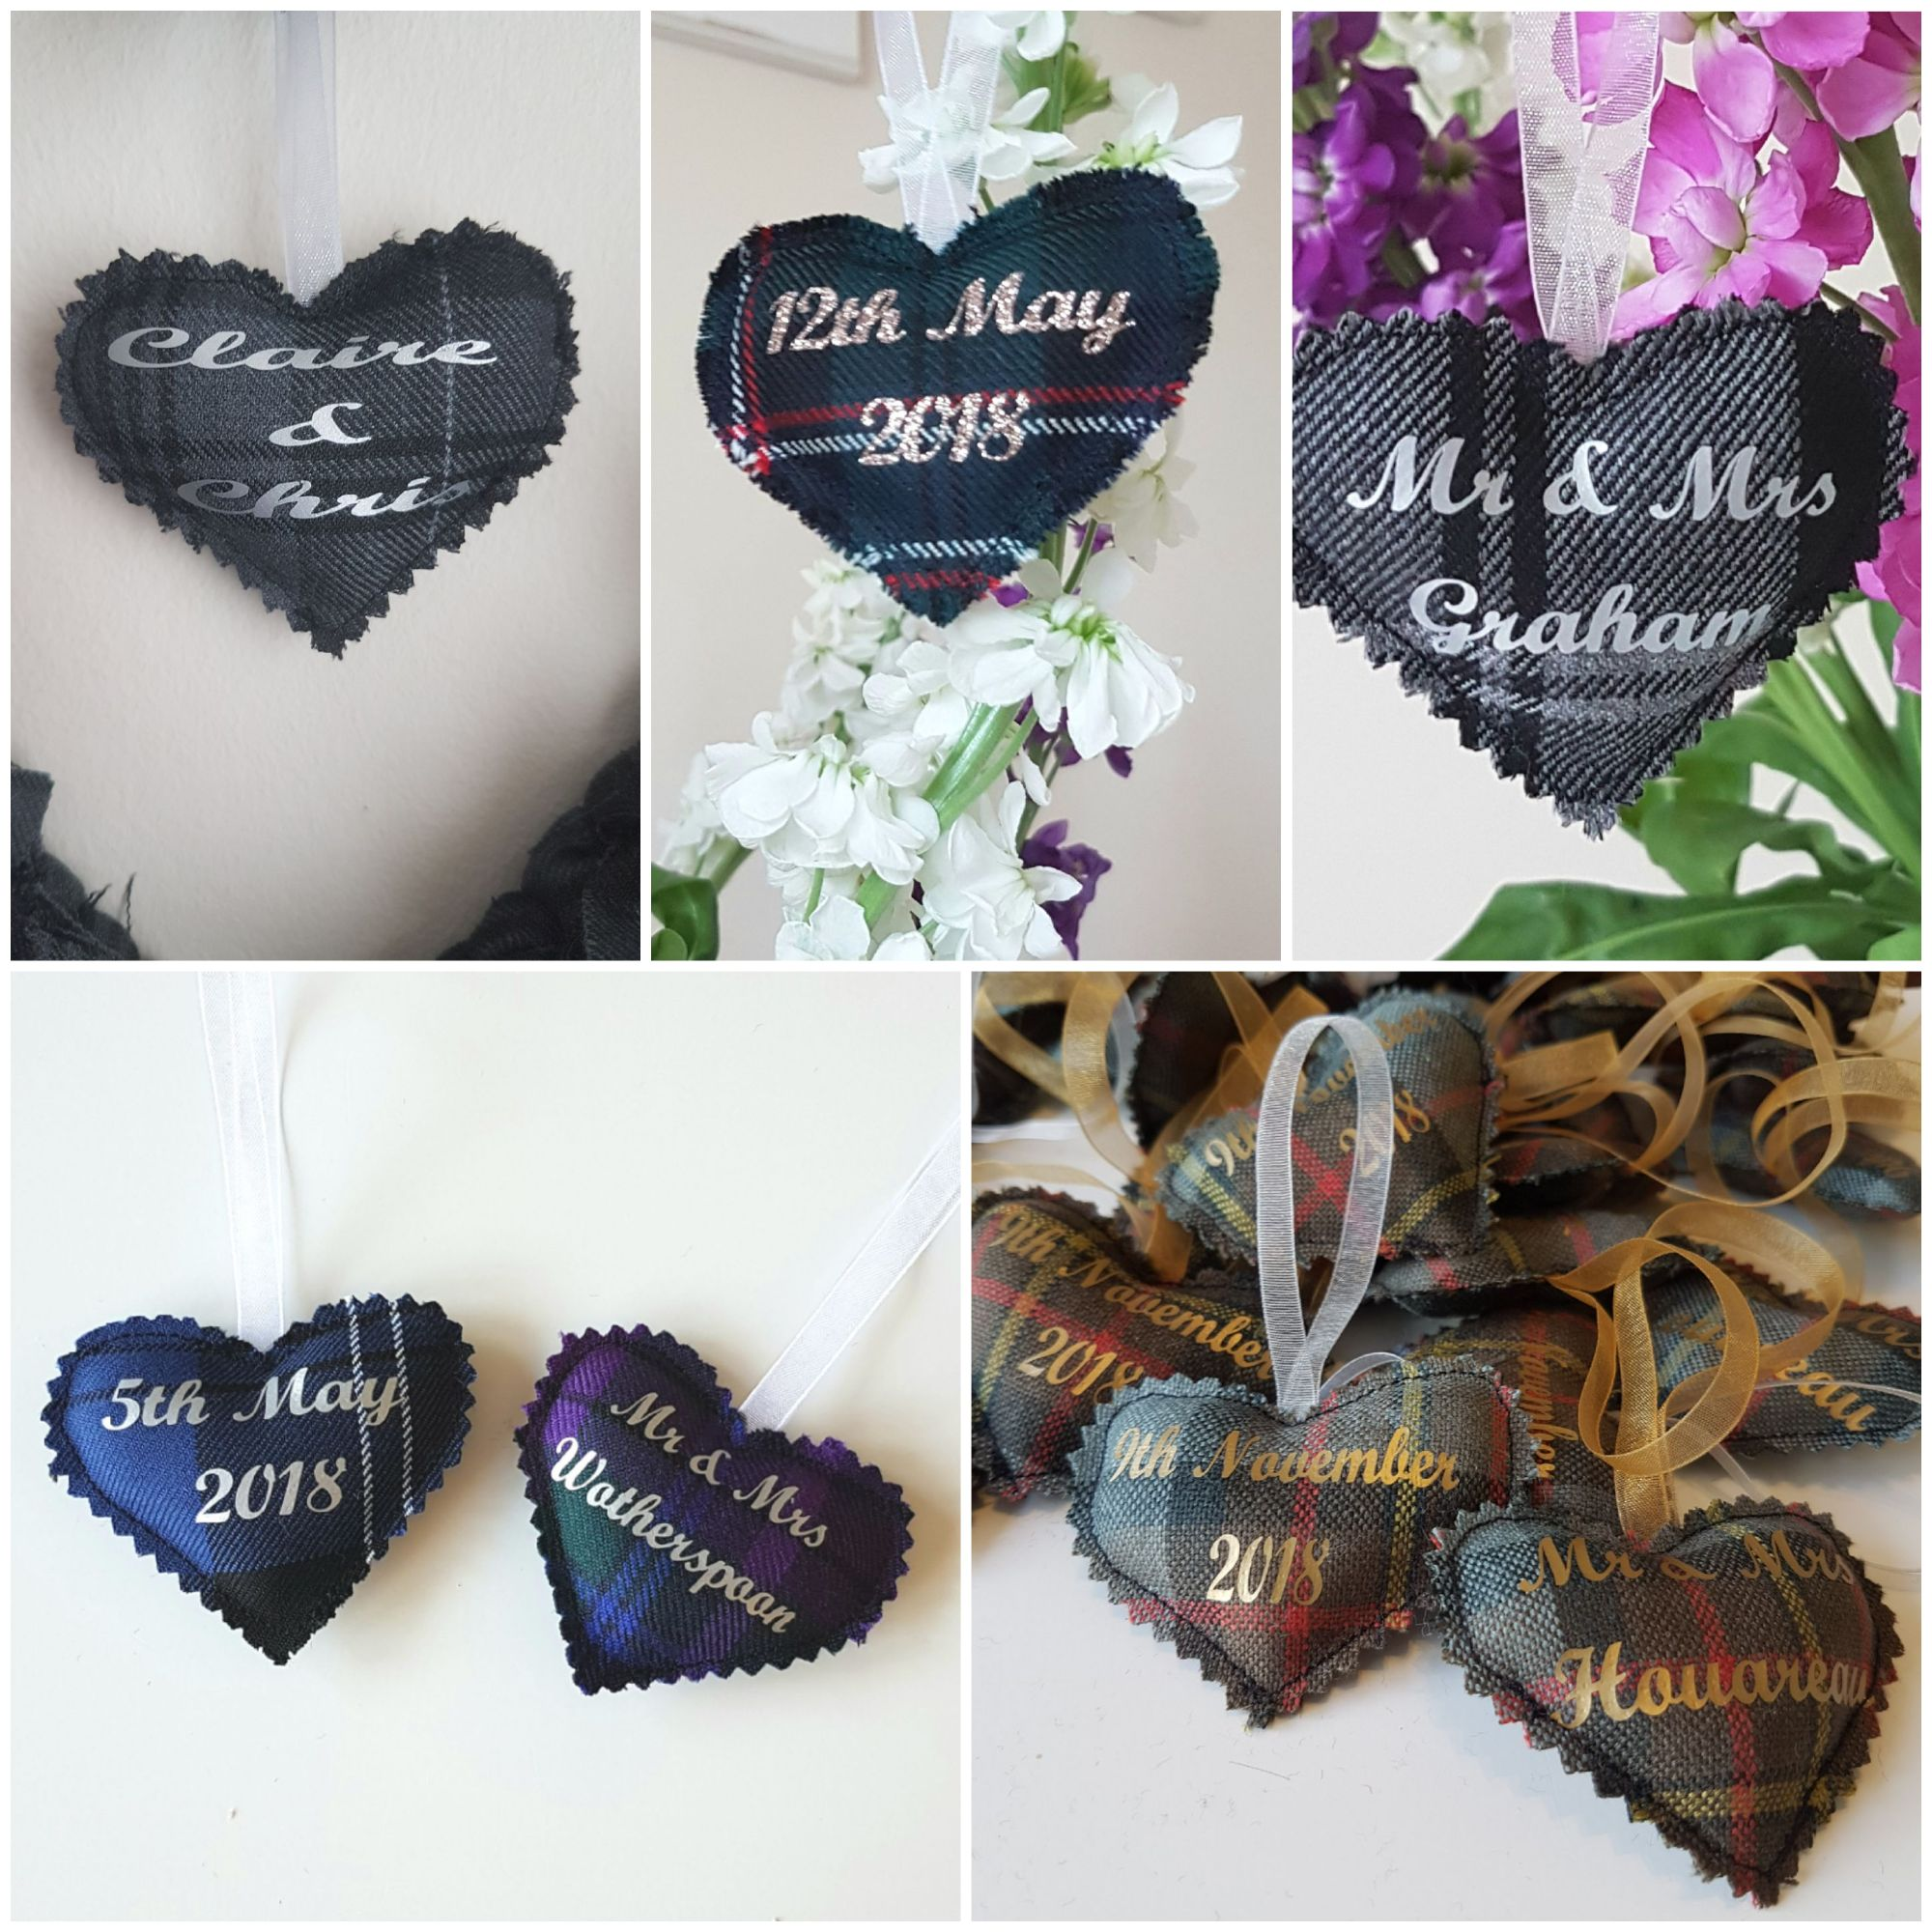 Personalised tartan wedding favours, personalised gift idea